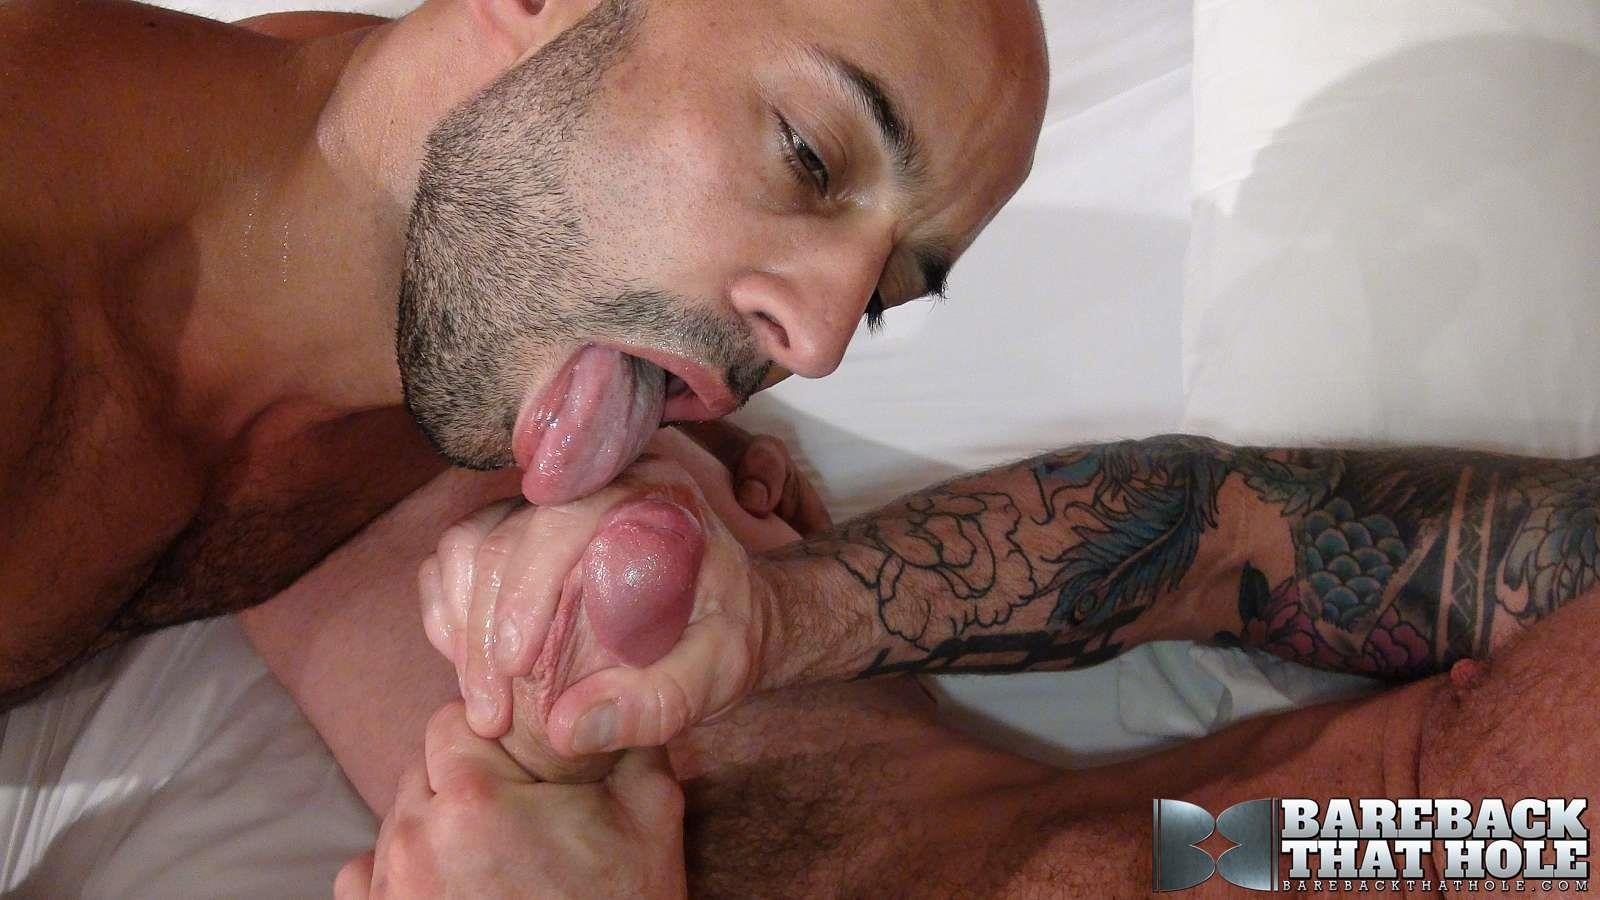 Bareback That Hole Bareback That Hole Rocco Steele and Igor Lukas Huge Cock Barebacking A Tight Ass Amateur Gay Porn 15 Rocco Steele Tearing Up A Tight Ass With His Huge Cock